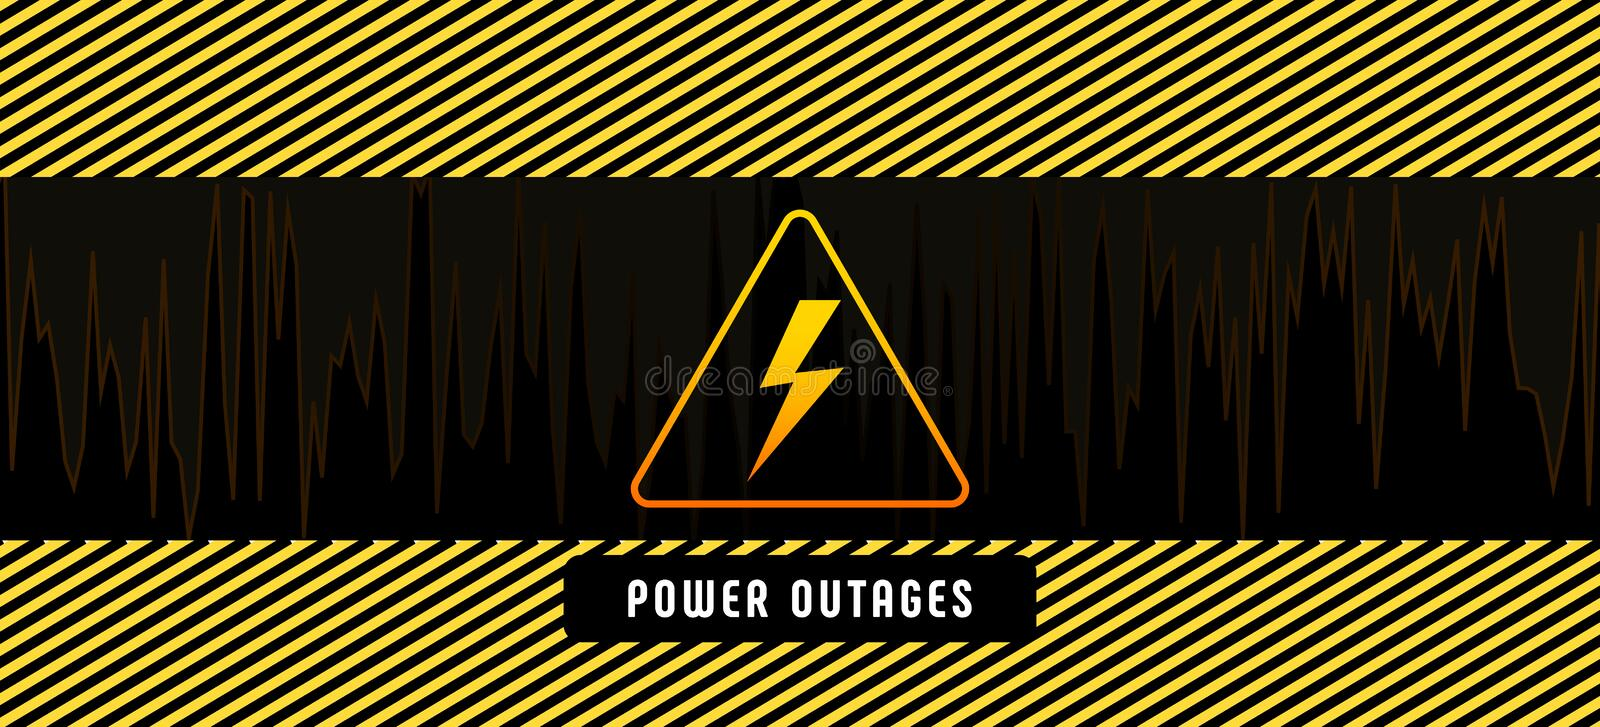 Power outage, poster with warning lines and yellow triangular caution icon on black background. royalty free illustration